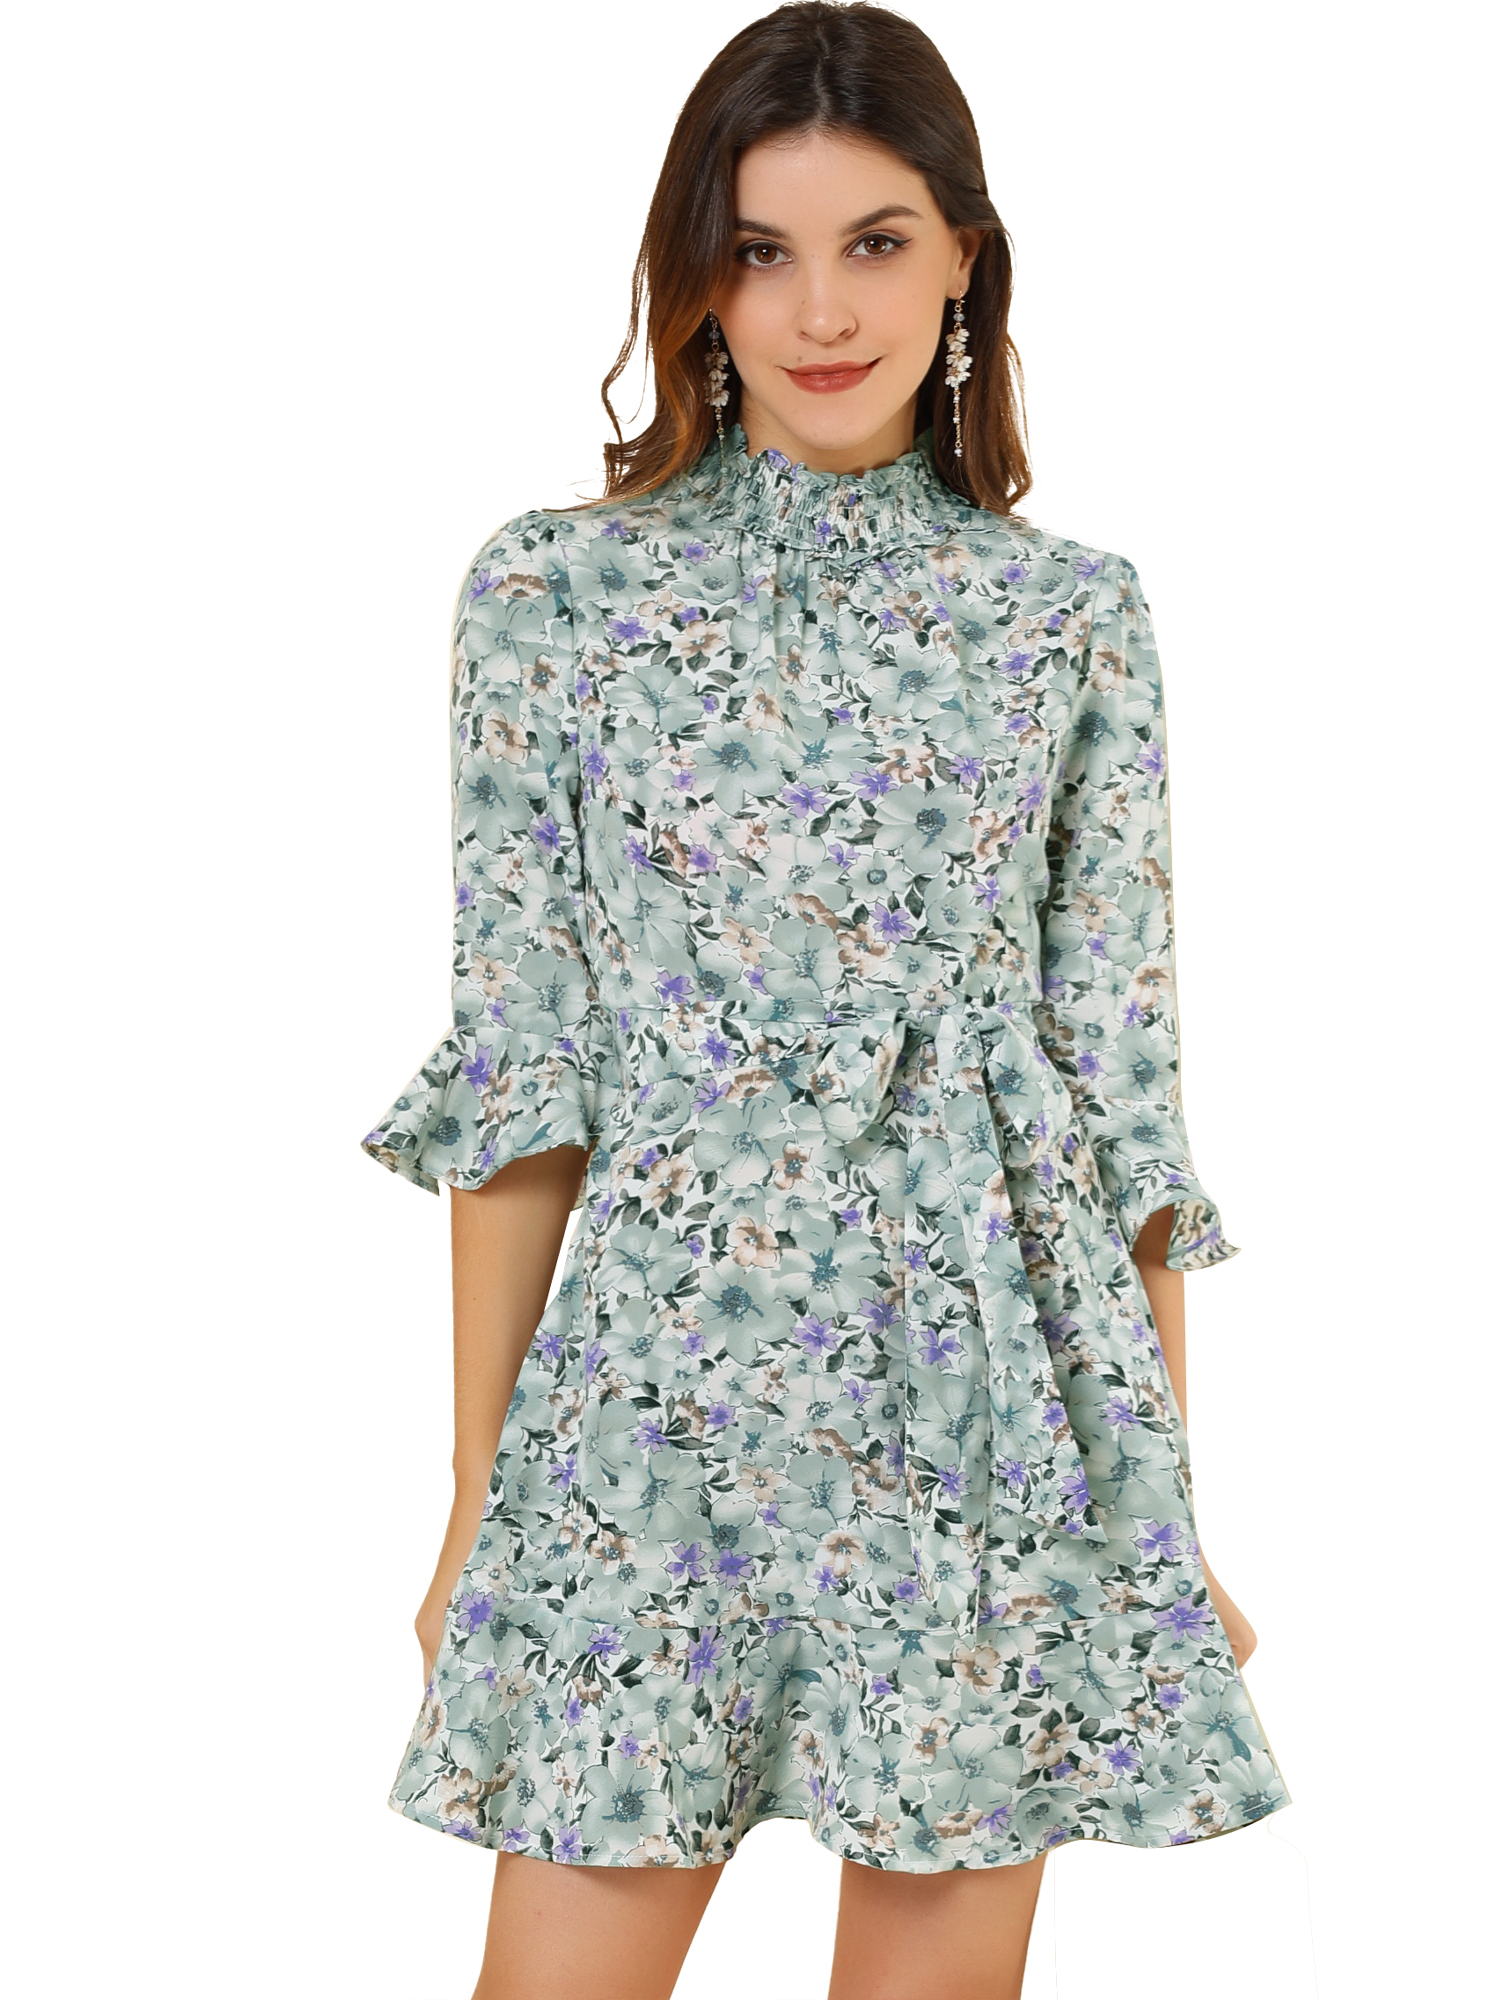 Women's Floral 3/4 Bell Sleeve Smocked Belted Flare Ruffle Dress White Mint XL